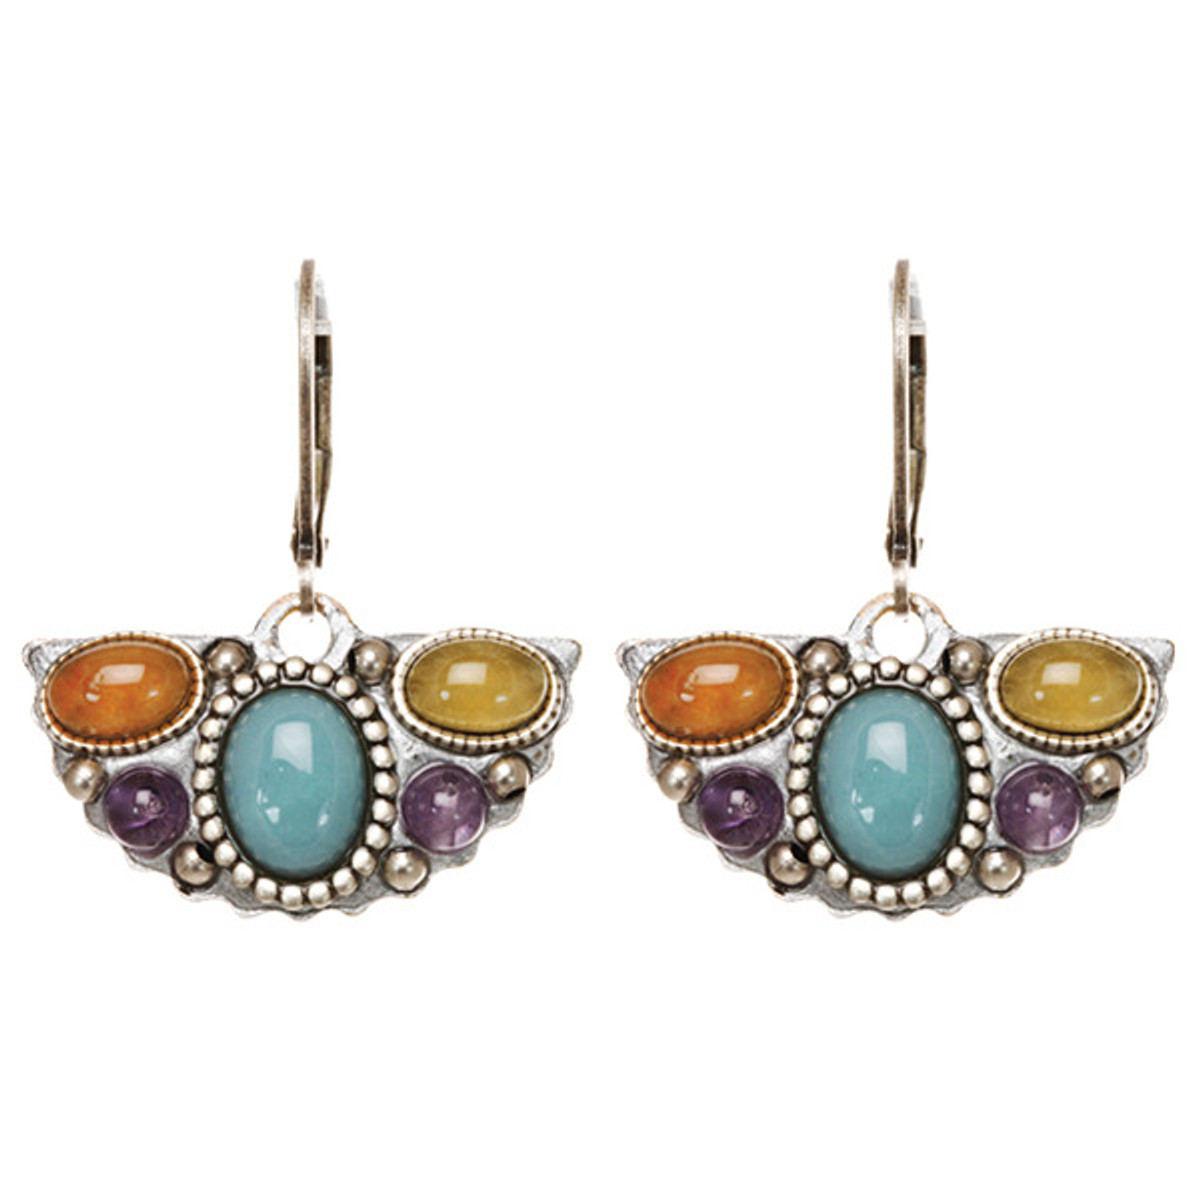 Gorgeous Tranquility Earrings From Michal Golan Jewelry